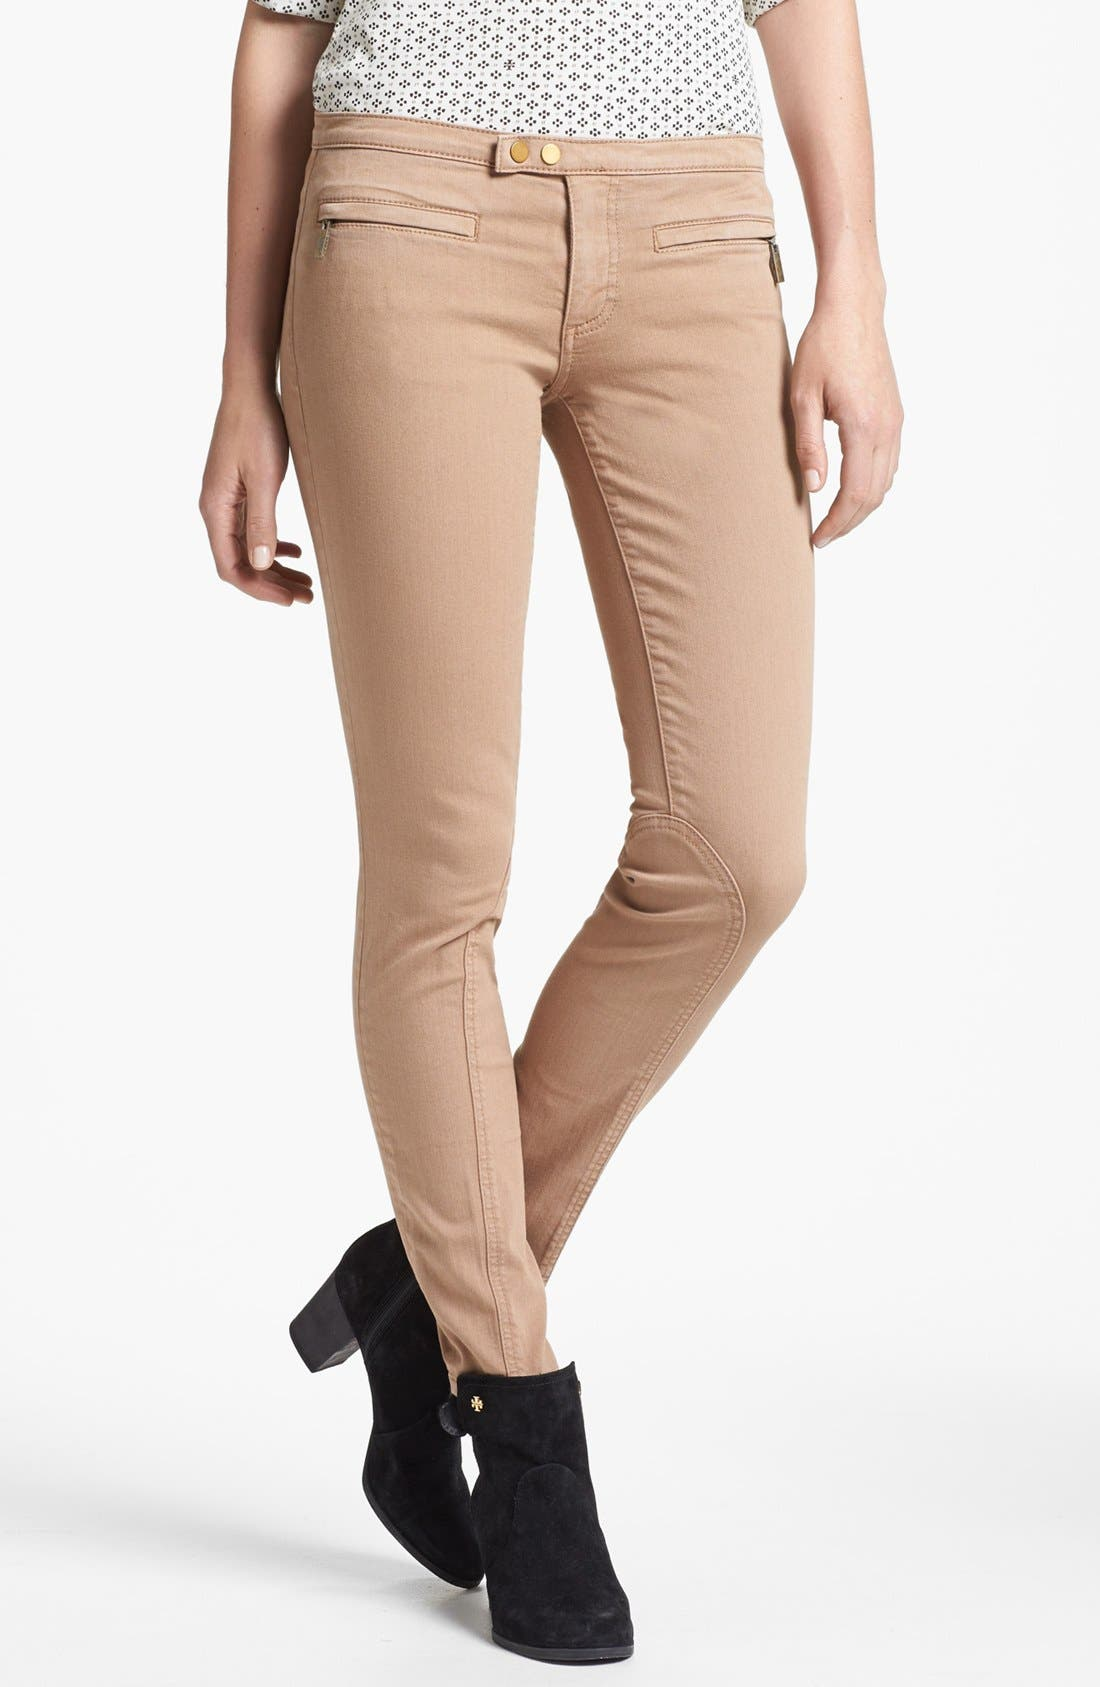 Main Image - Tory Burch 'Ellie' Colored Skinny Stretch Jeans (Almond)